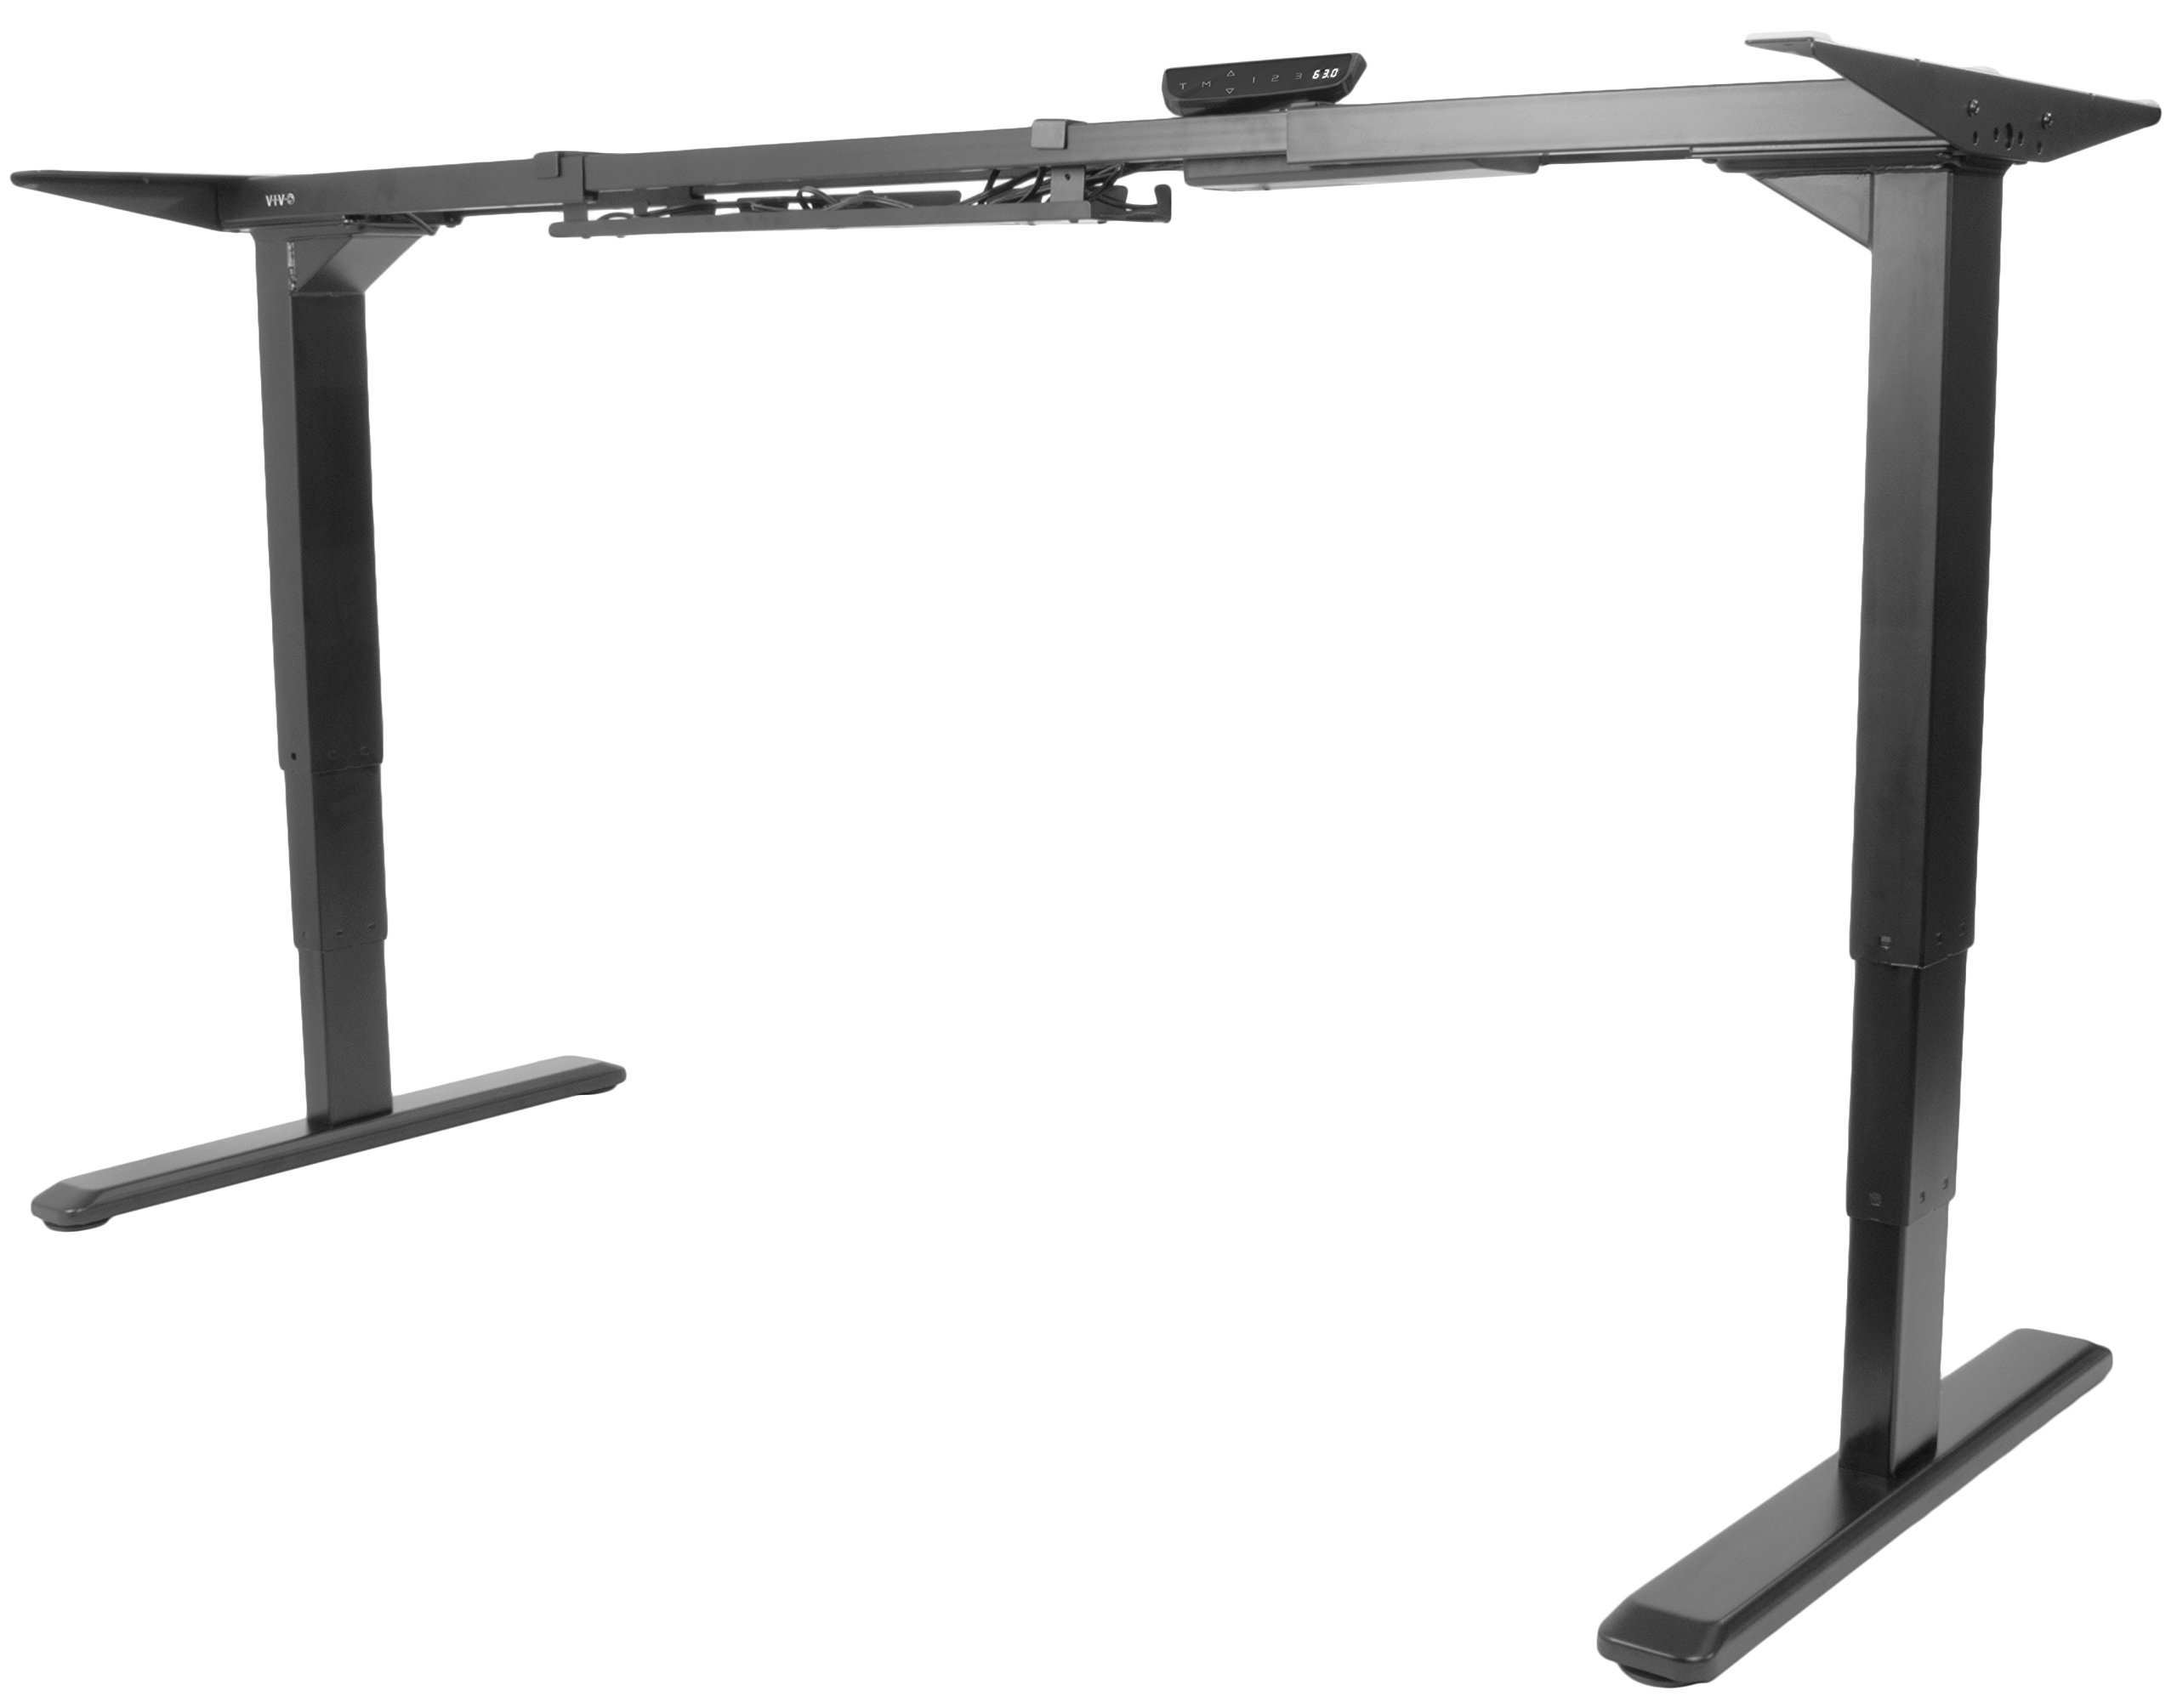 VIVO Black Electric Dual Motor Stand Up Desk Frame with Cable Management Rack | Ergonomic Height Adjustable Standing DIY Workstation (DESK-V103E) by VIVO